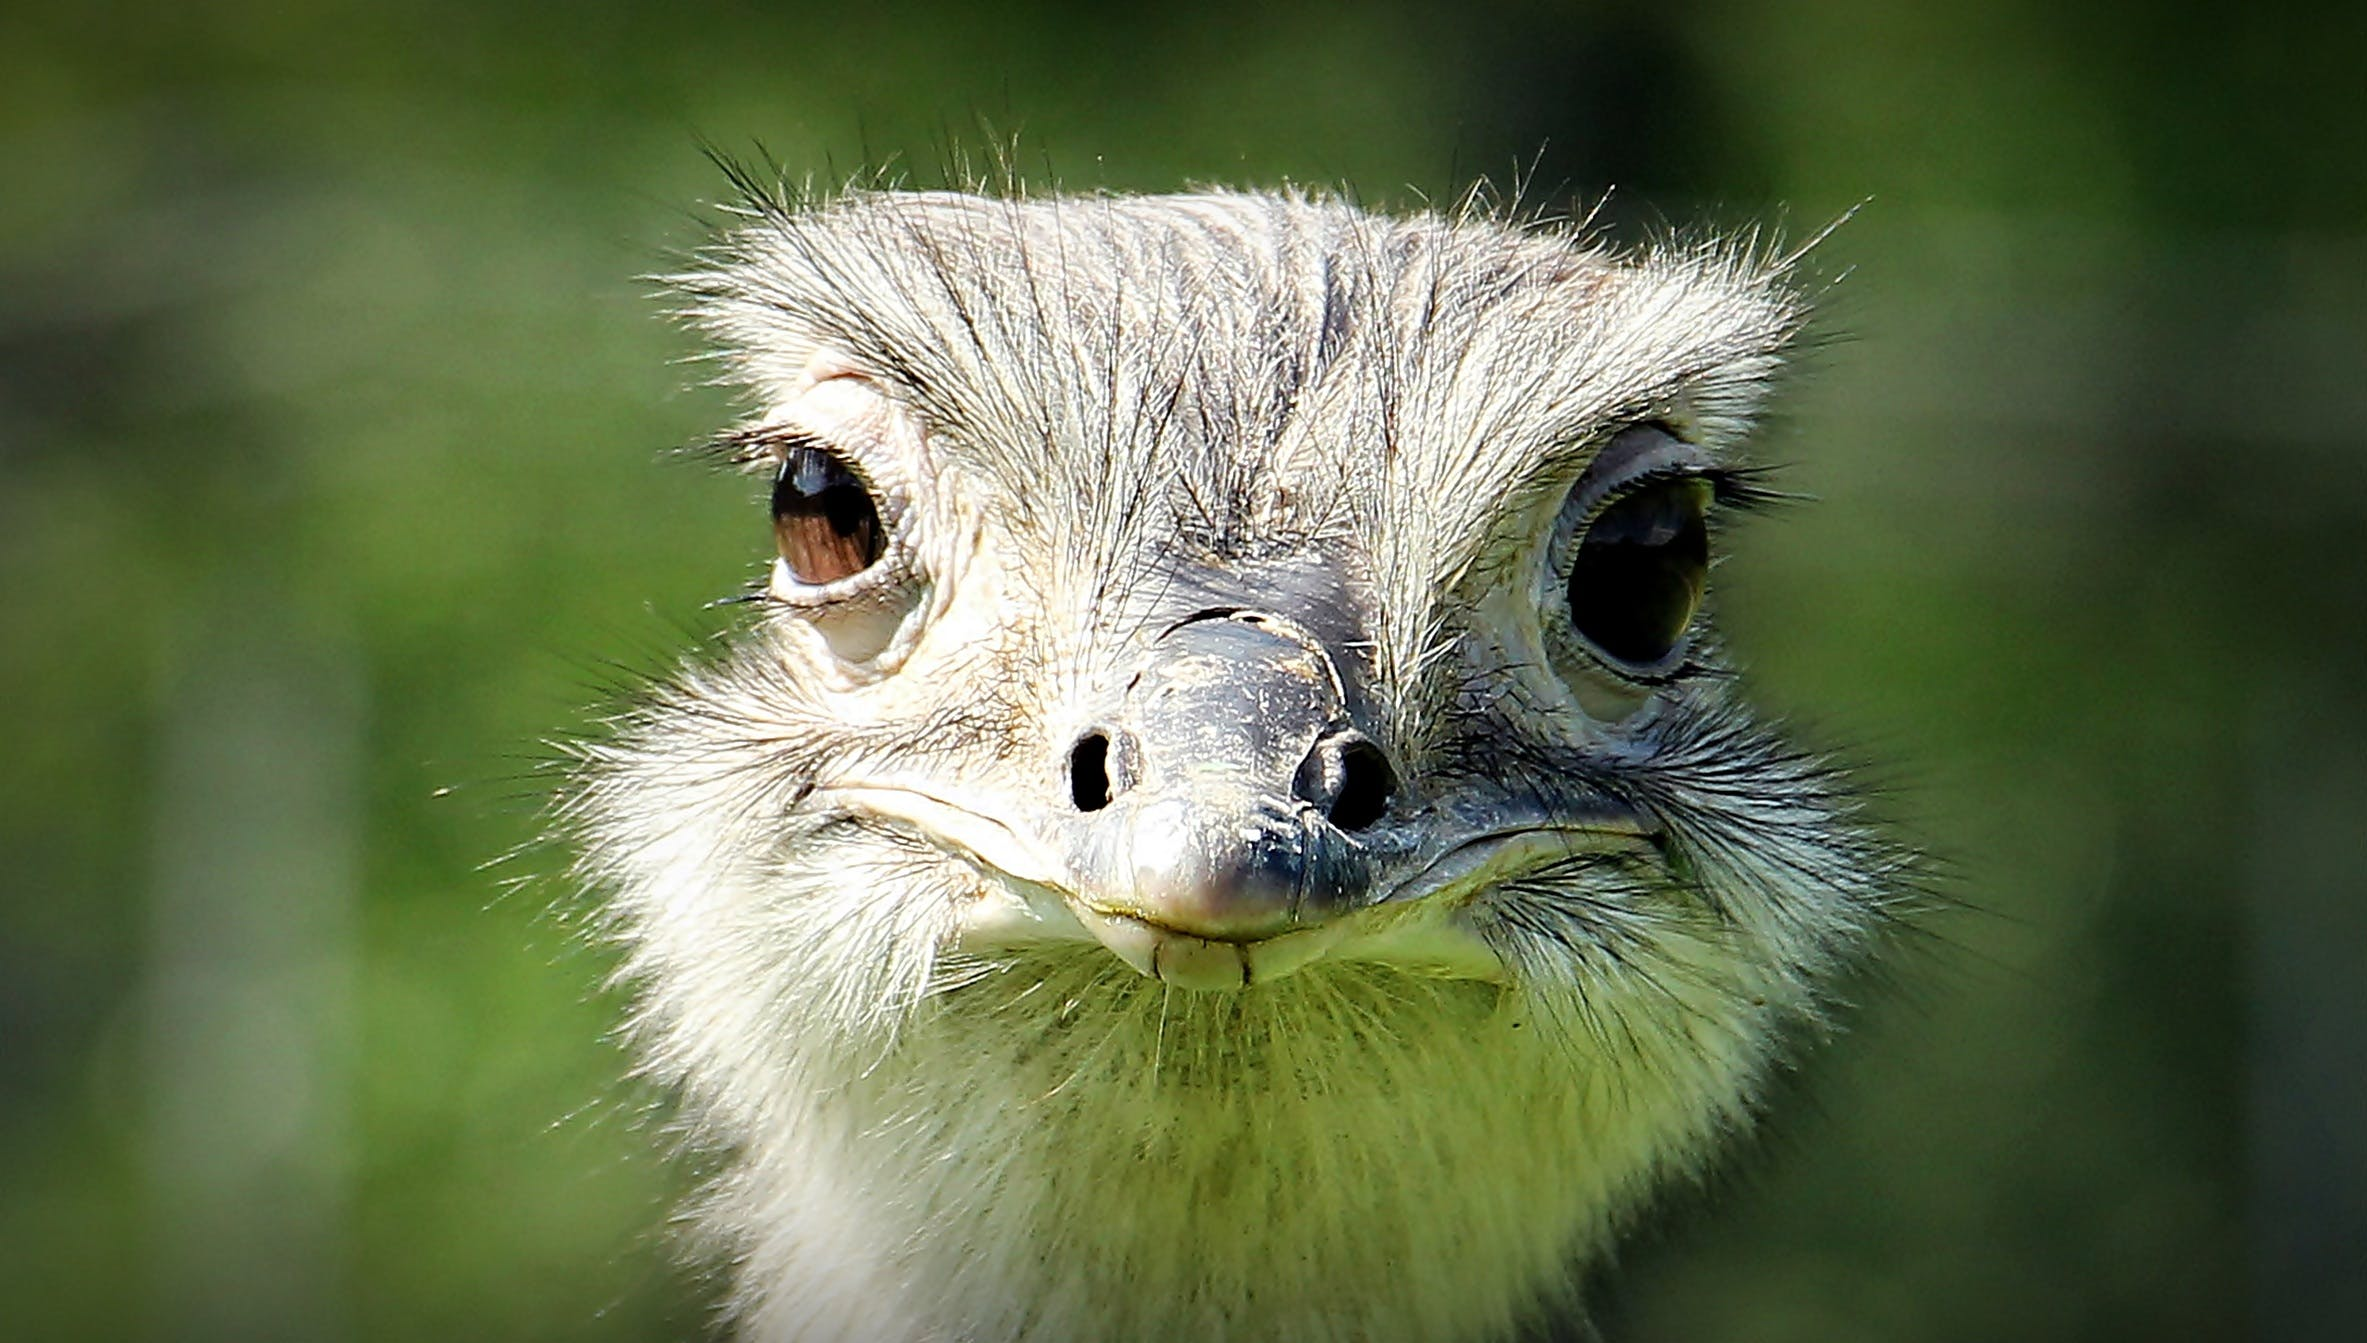 Ostrich Face during Daytime